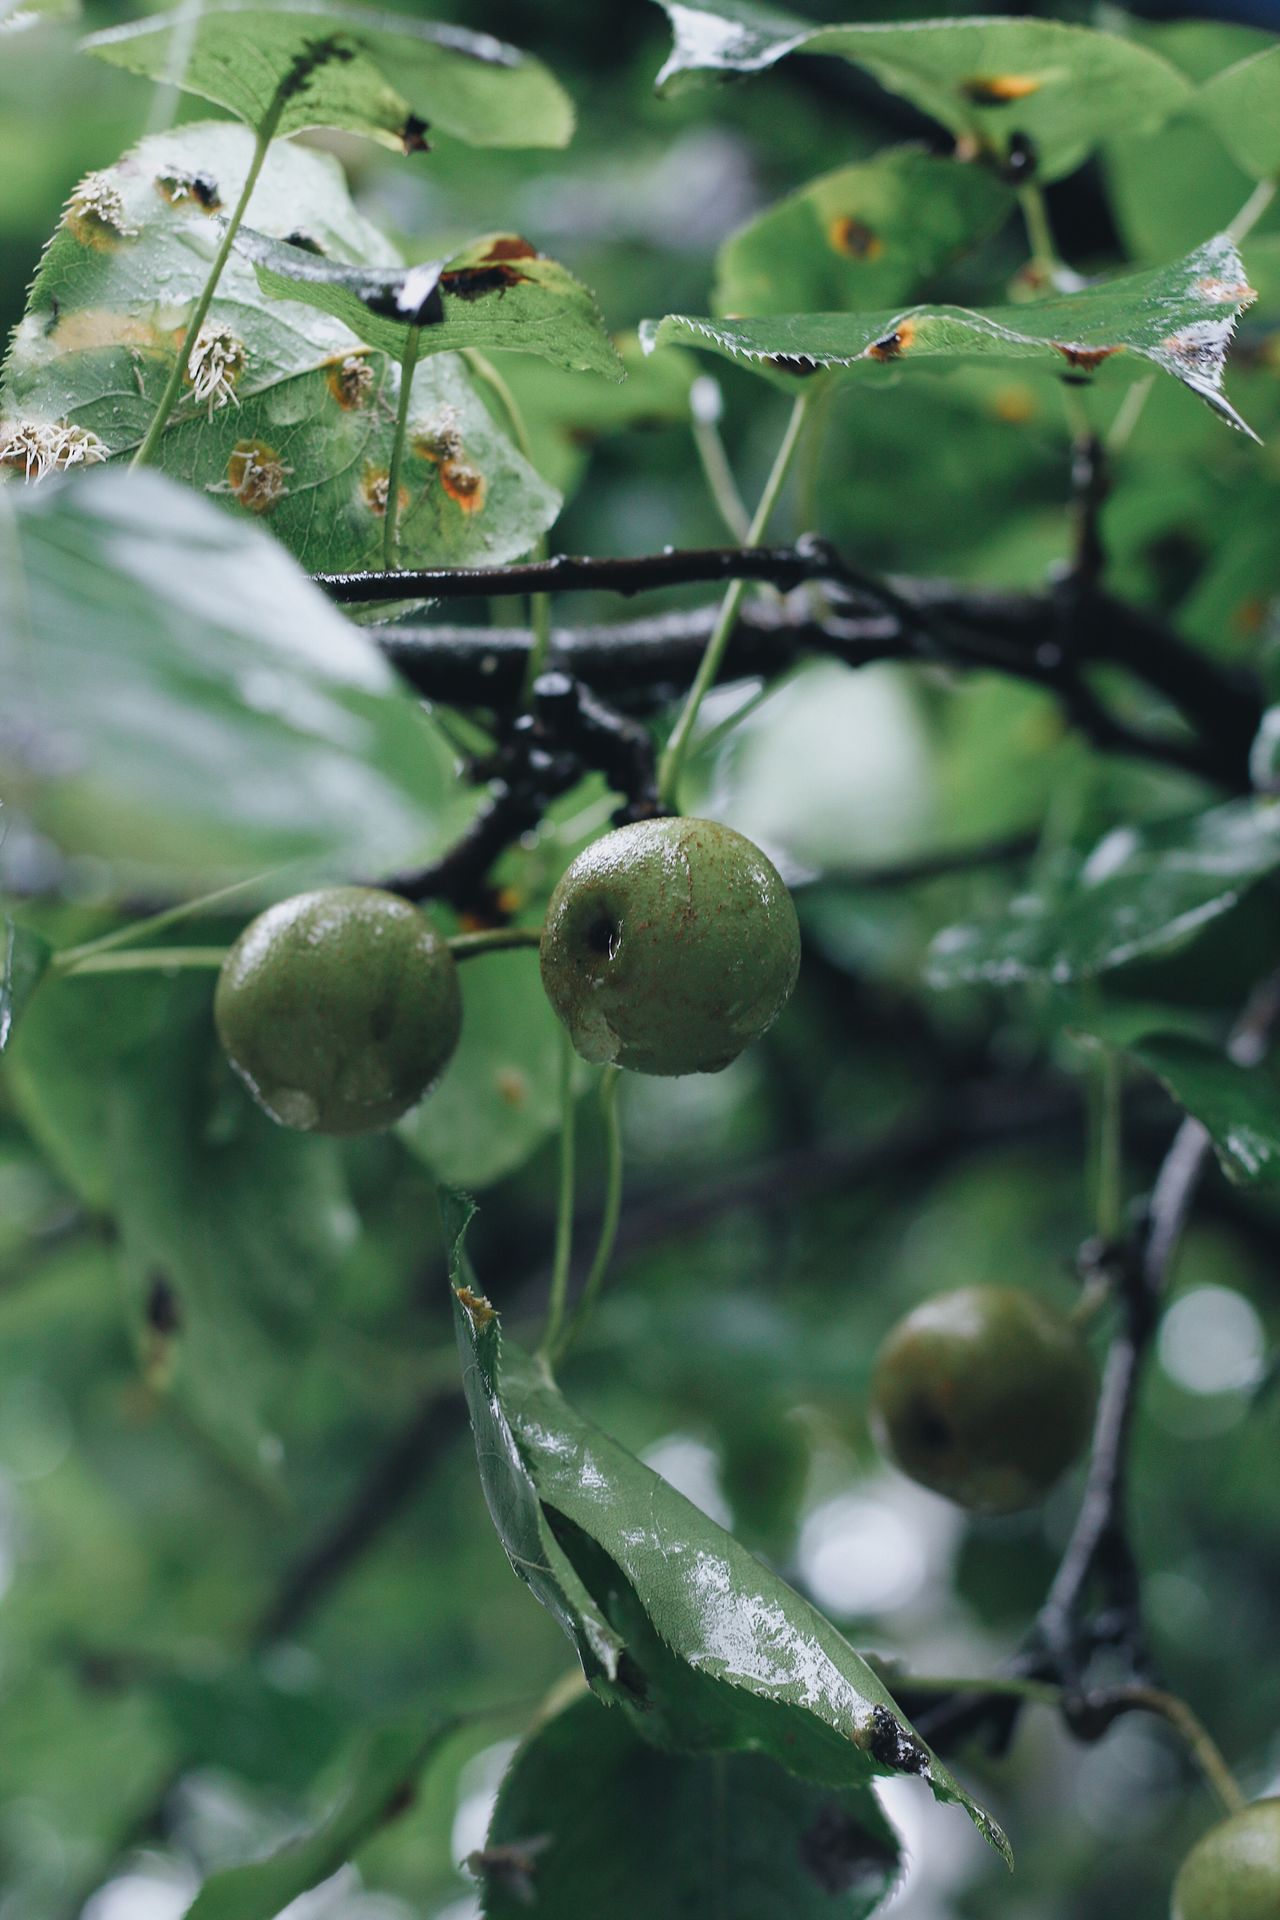 Rain Rainy Days Raindrops Pear Pears Pear Tree  Food And Drink Fruit Growth Green Color Food Unripe Nature Tree EyeEmNewHere Freshness Healthy Eating Focus On Foreground No People Leaf Outdoors Plant Branch Close-up Beauty In Nature